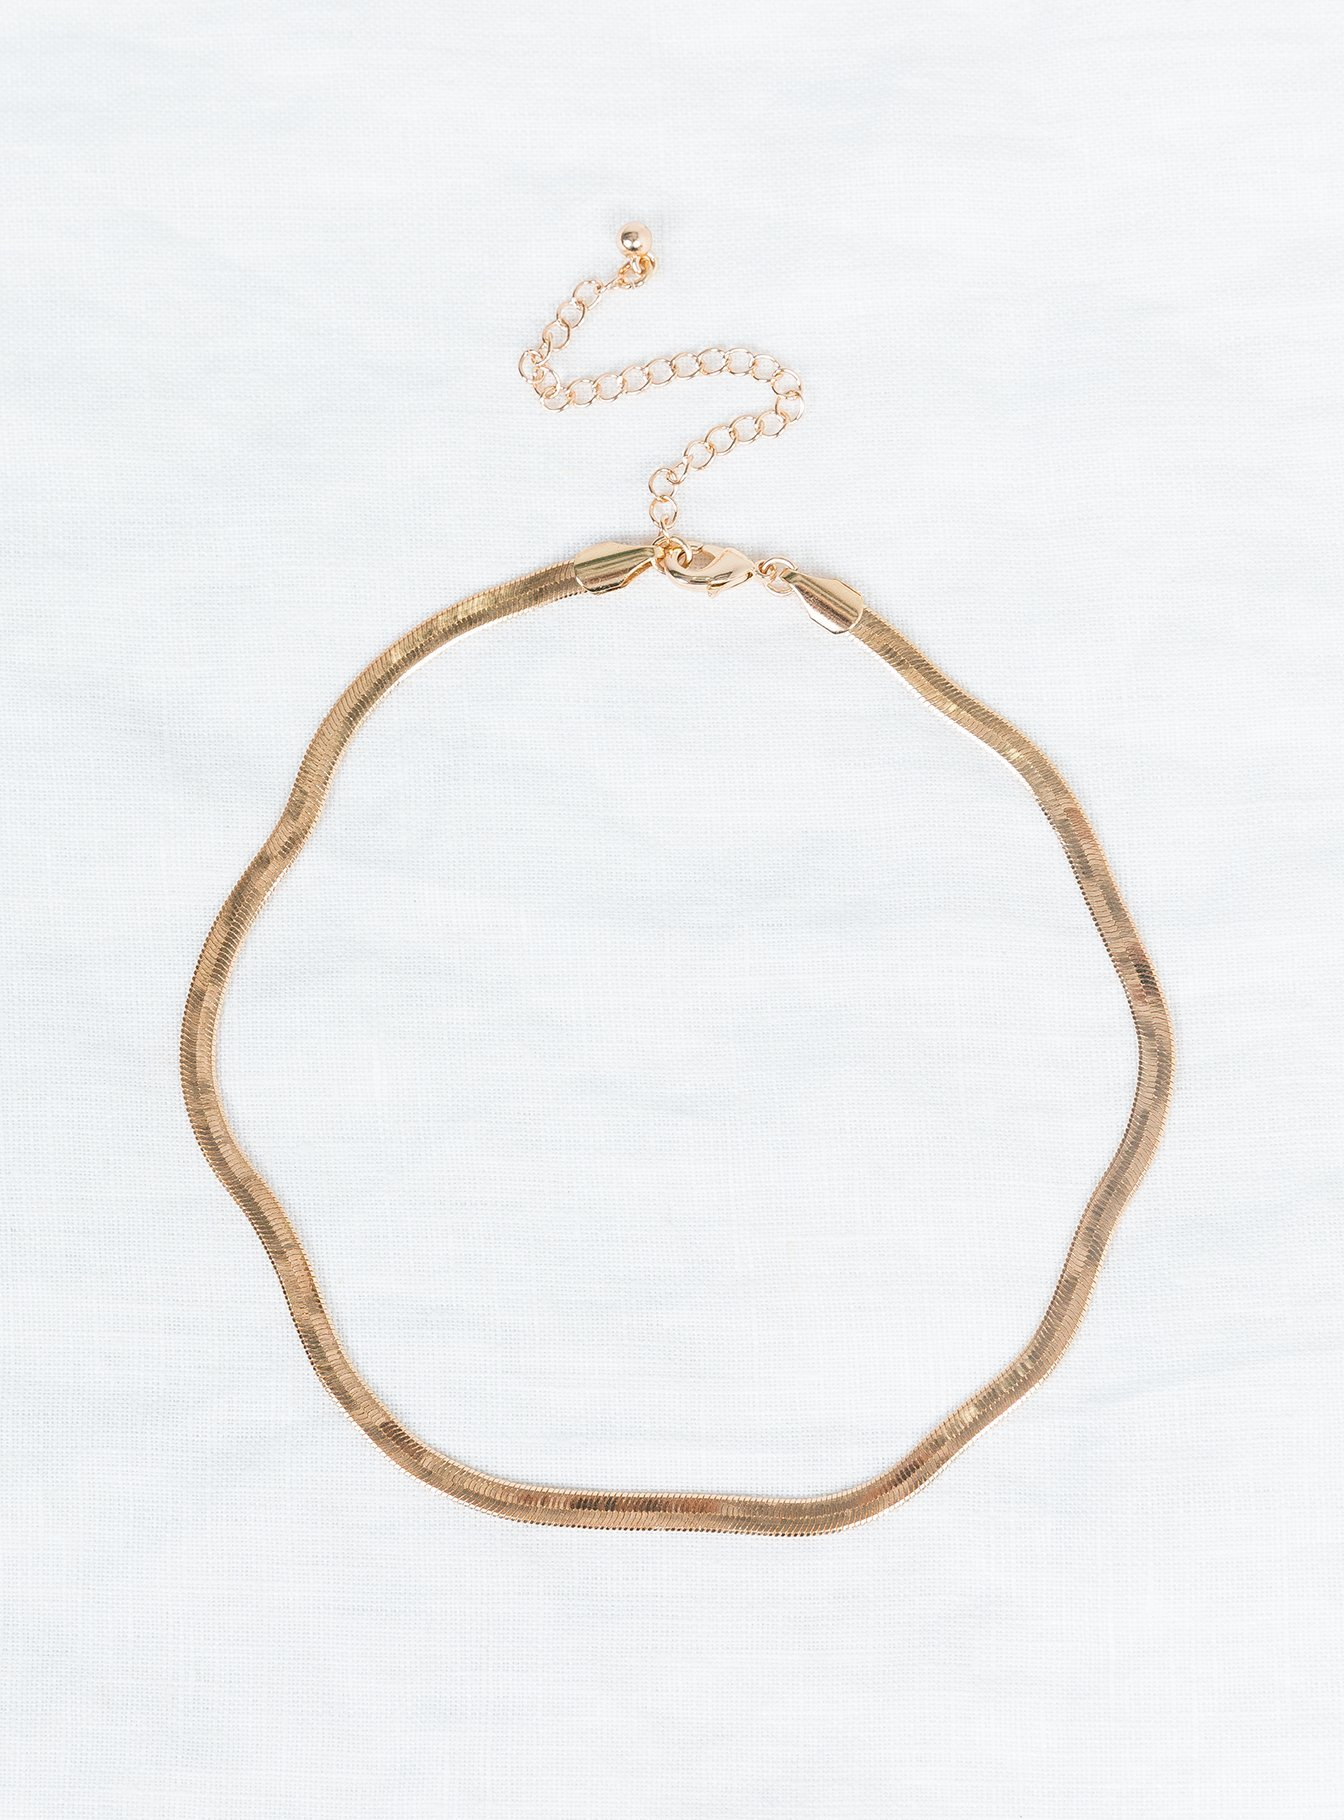 Necklaces (Side B)